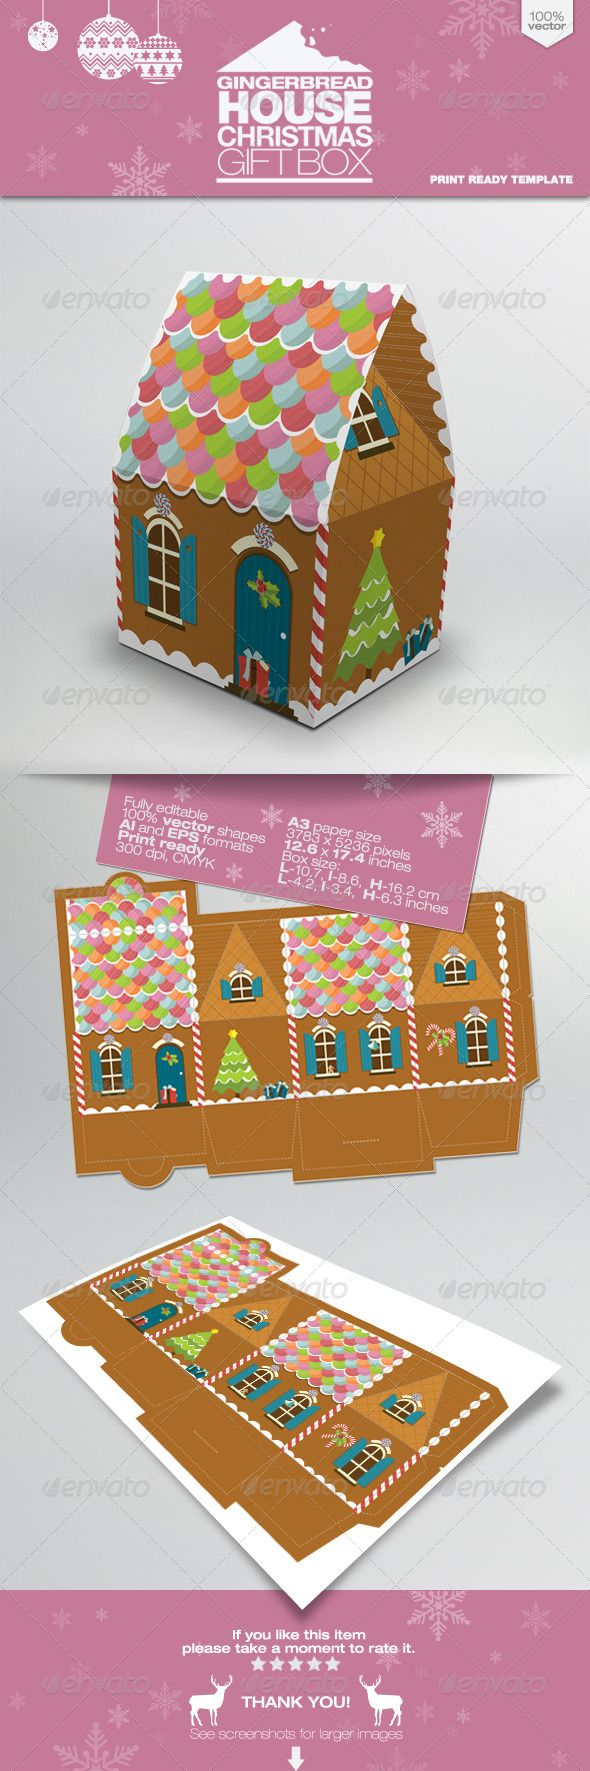 Gingerbread House Packaging Gift Box | Adobe, Vector ...